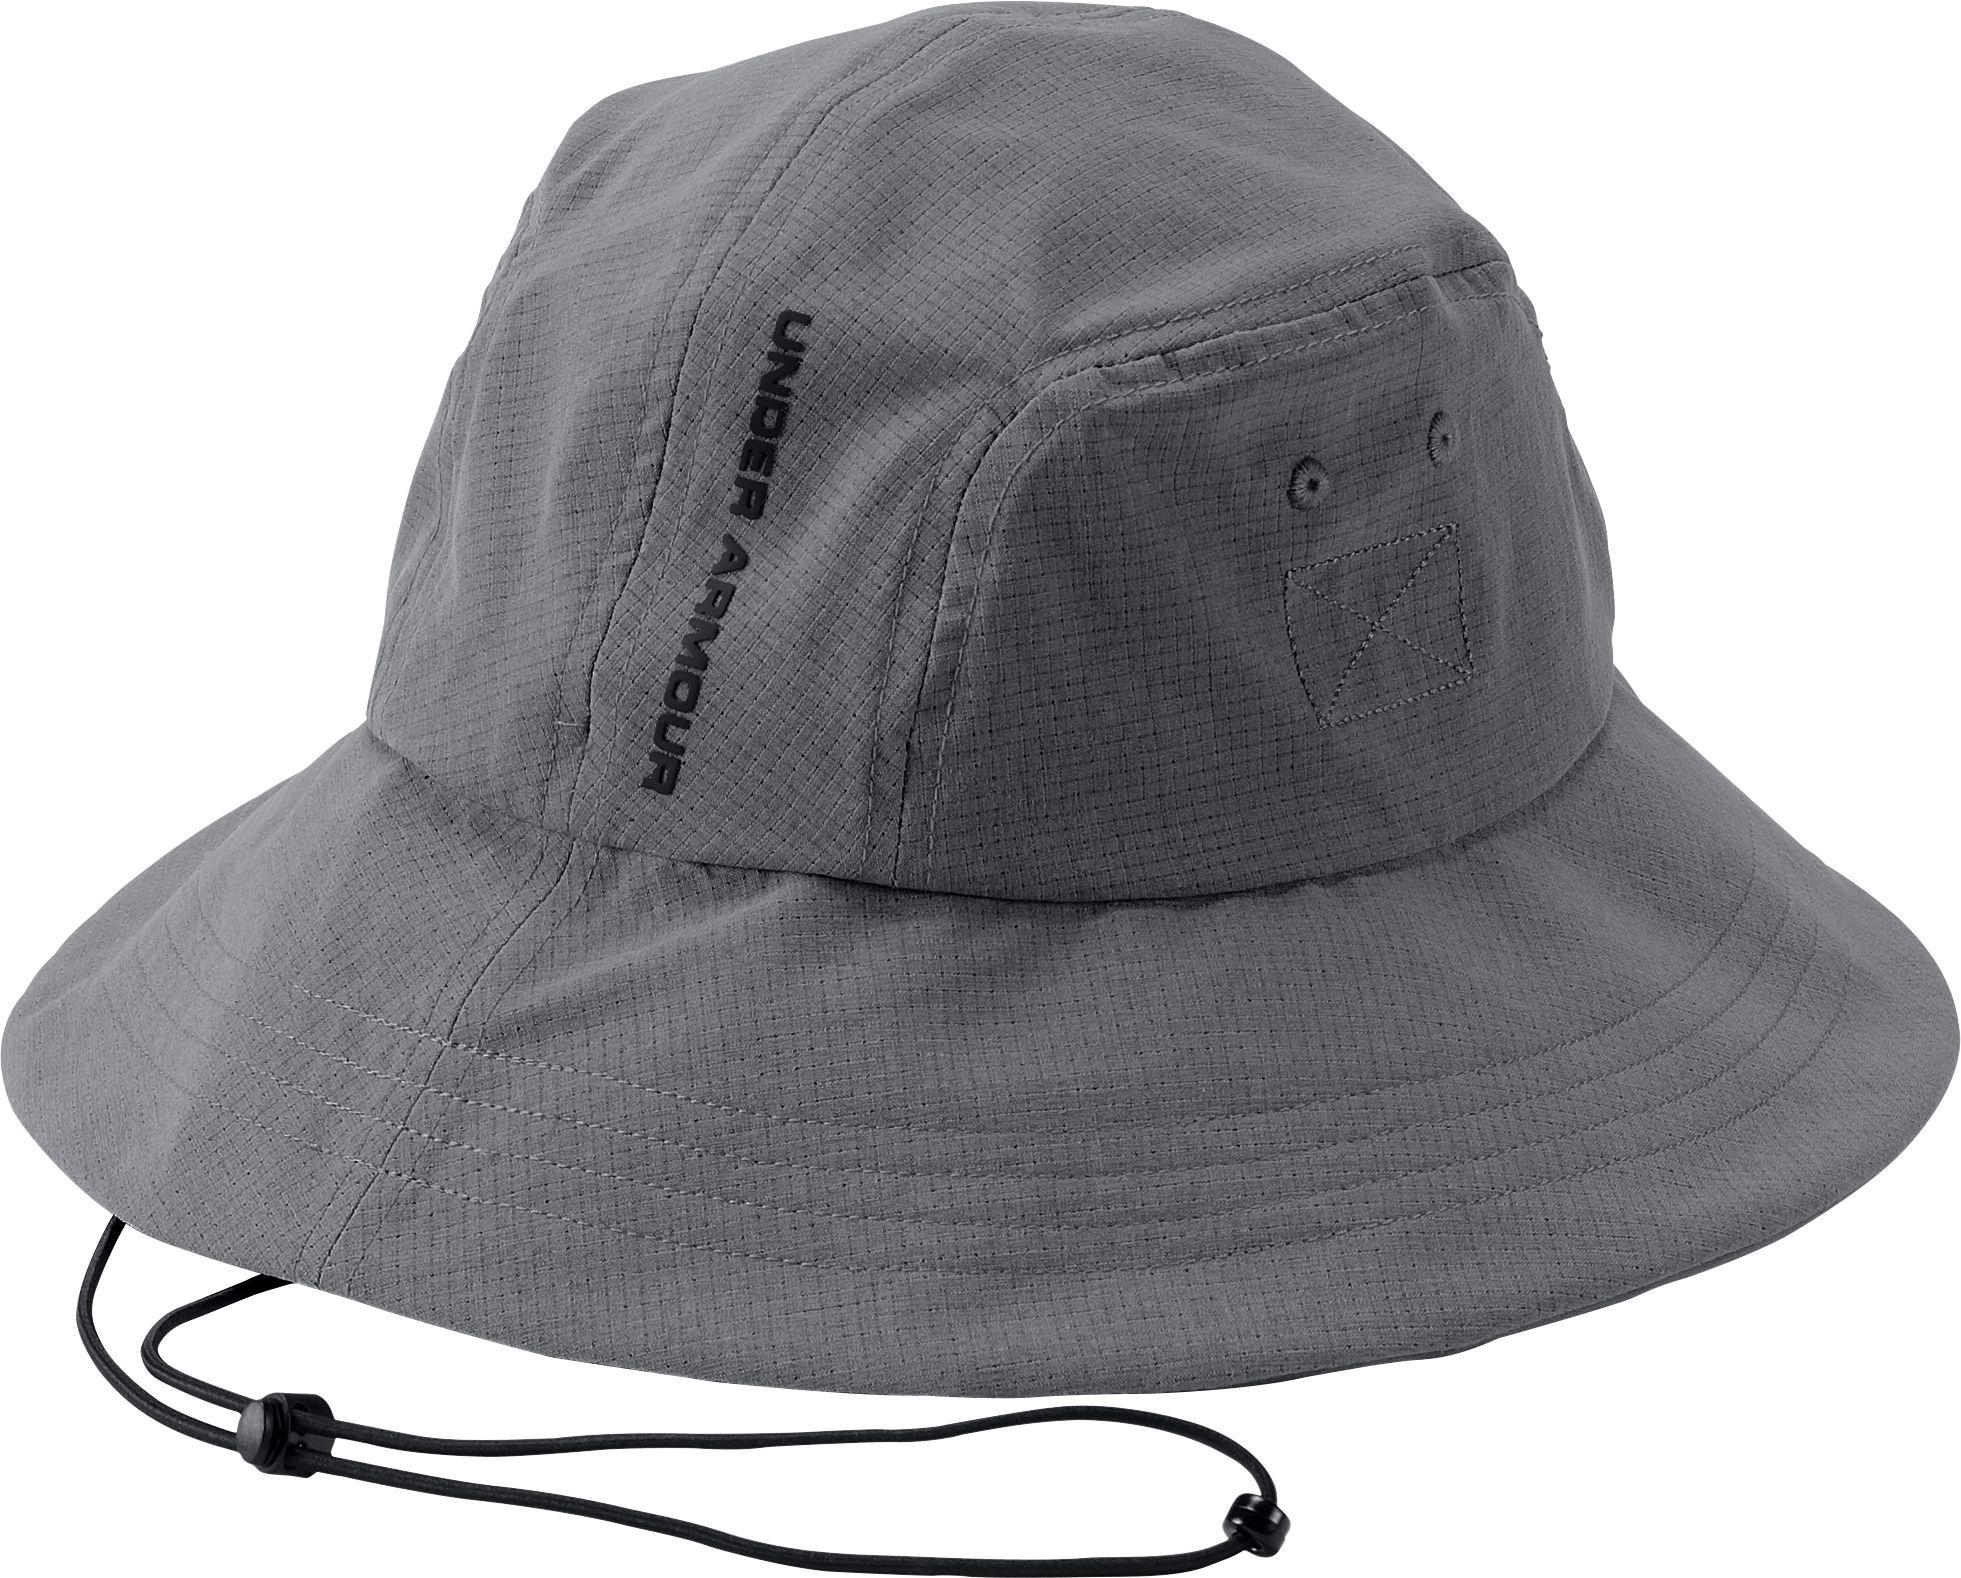 f5b058d4b9f Lyst - Under Armour Armourvent Warrior 2.0 Bucket Hat in Black for Men